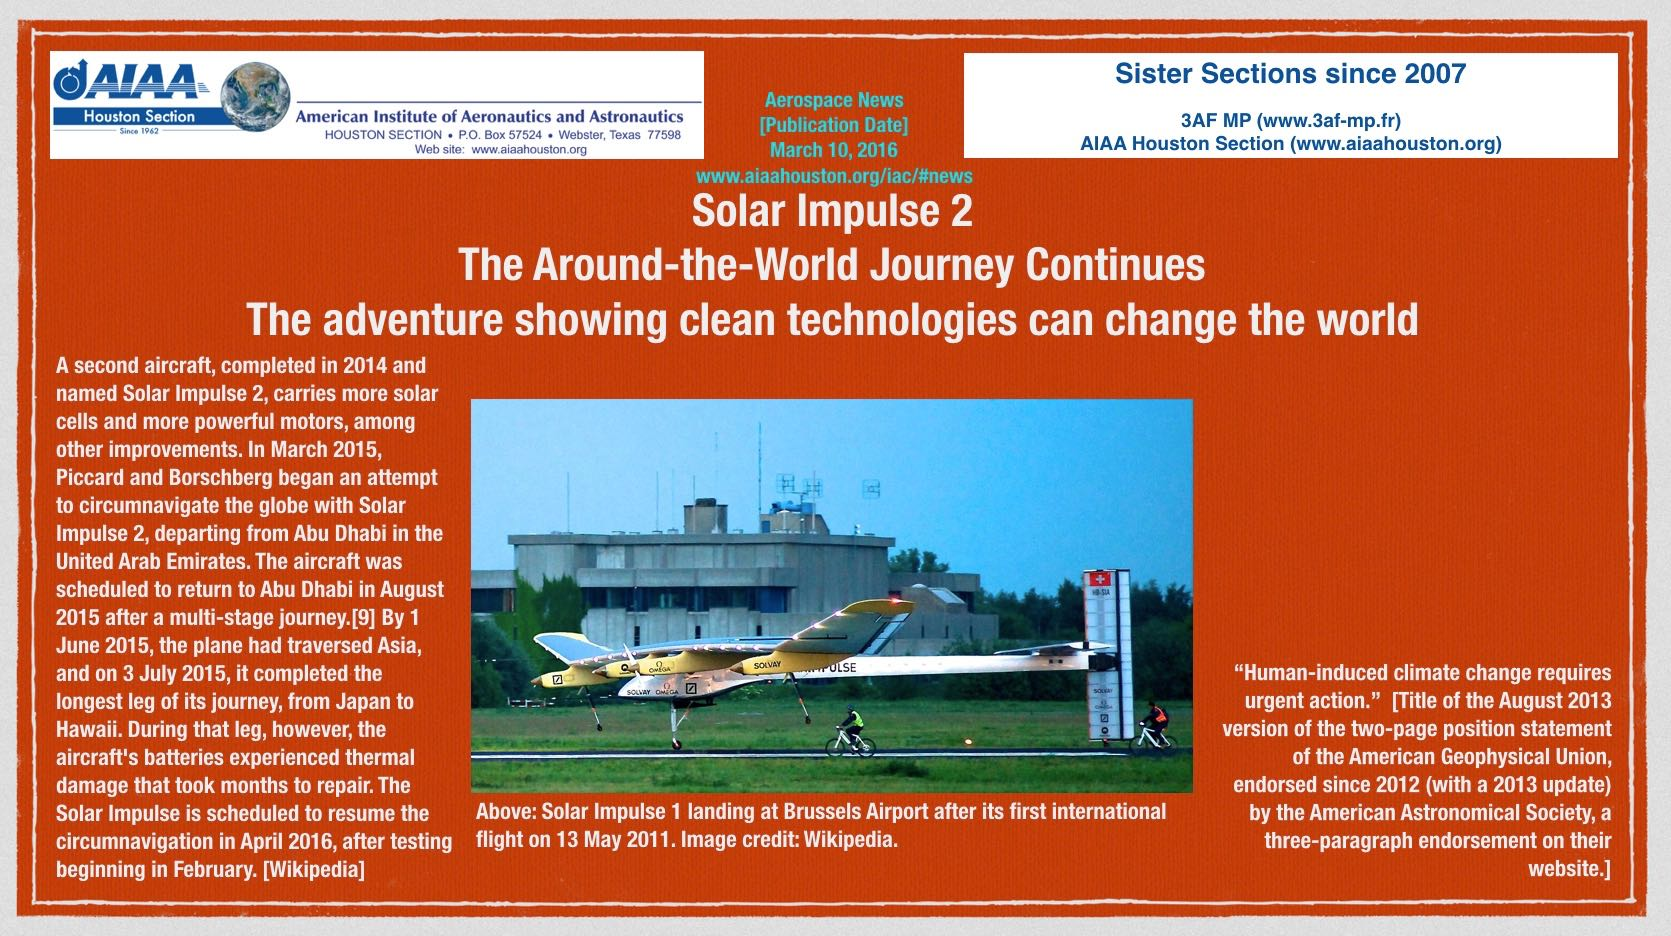 Above: Solar Impulse. Image credit: Wikipedia. (Click to zoom.)